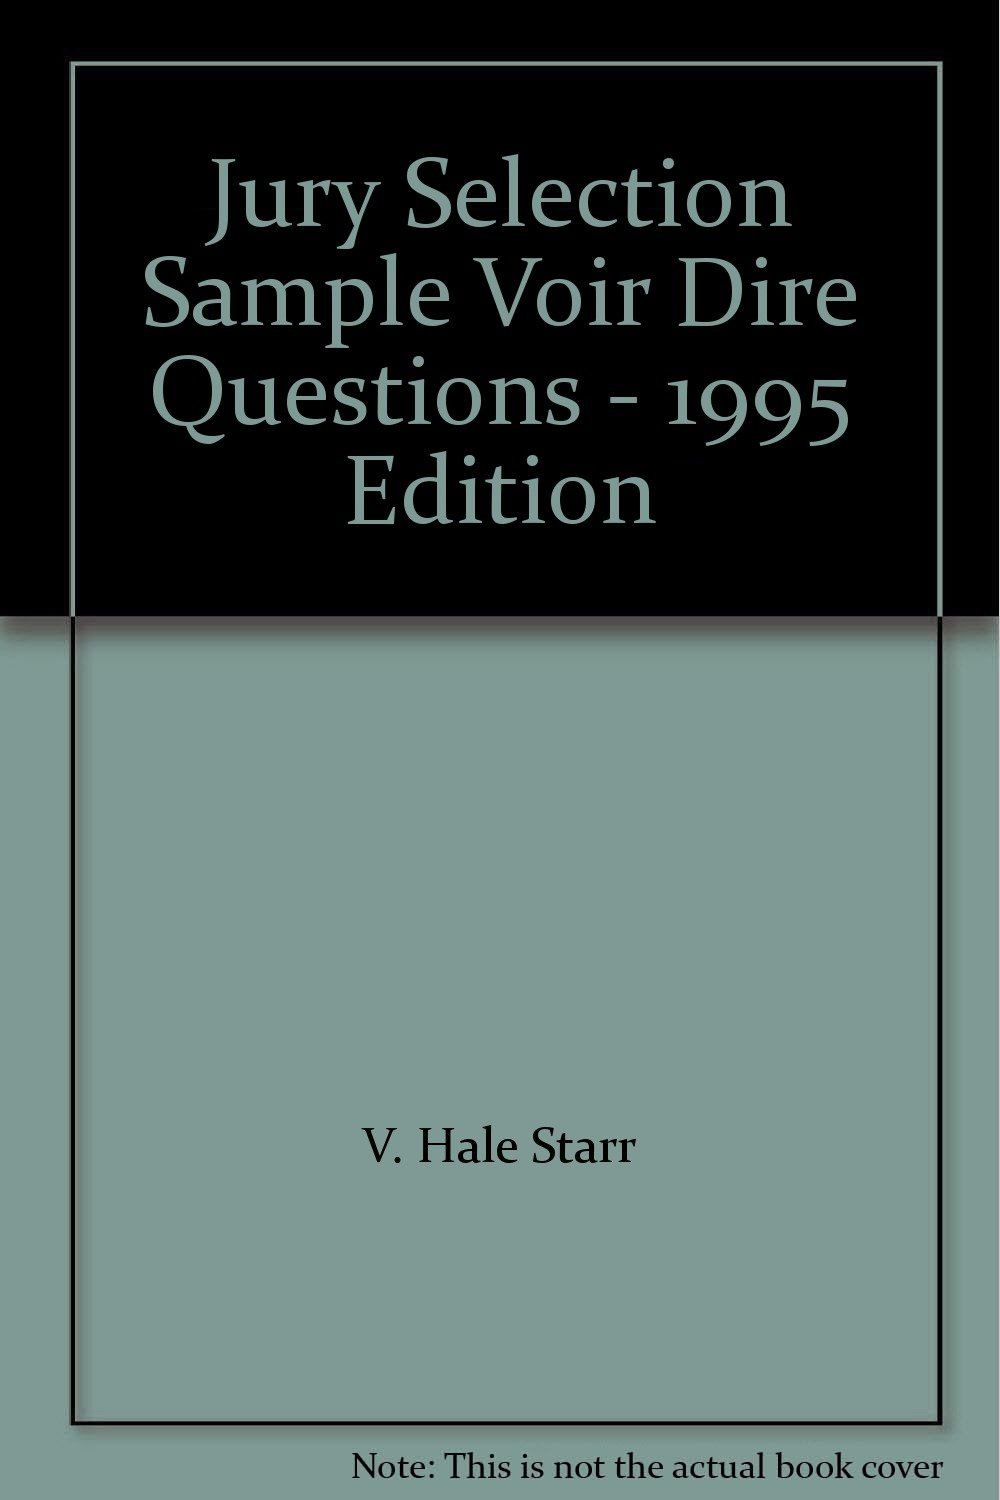 Jury Selection Sample Voir Dire Questions - 1995 Edition: V